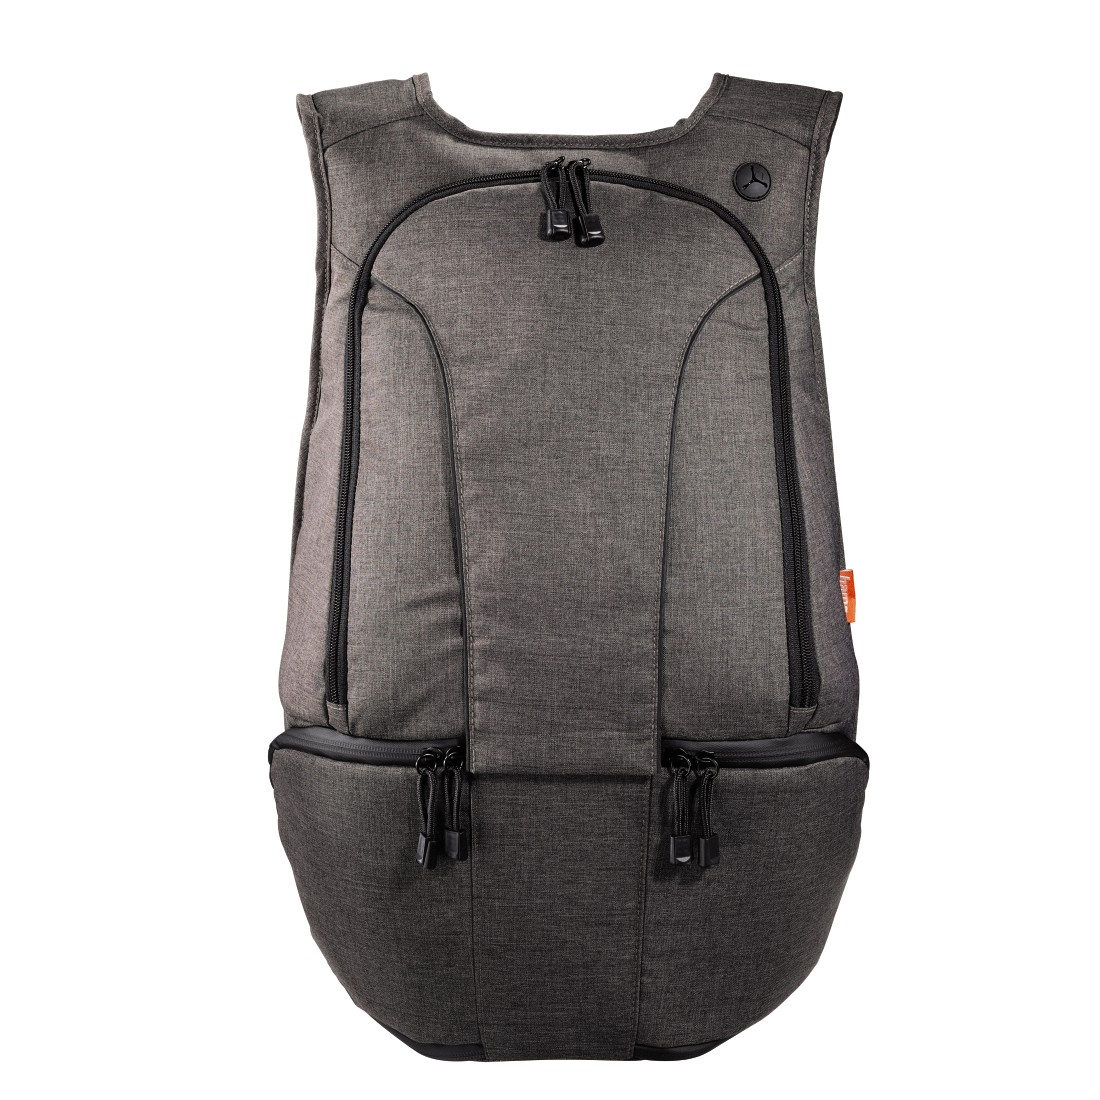 abx2 High-Res Image 2 - Hama, Lismore Camera Backpack, 170, black